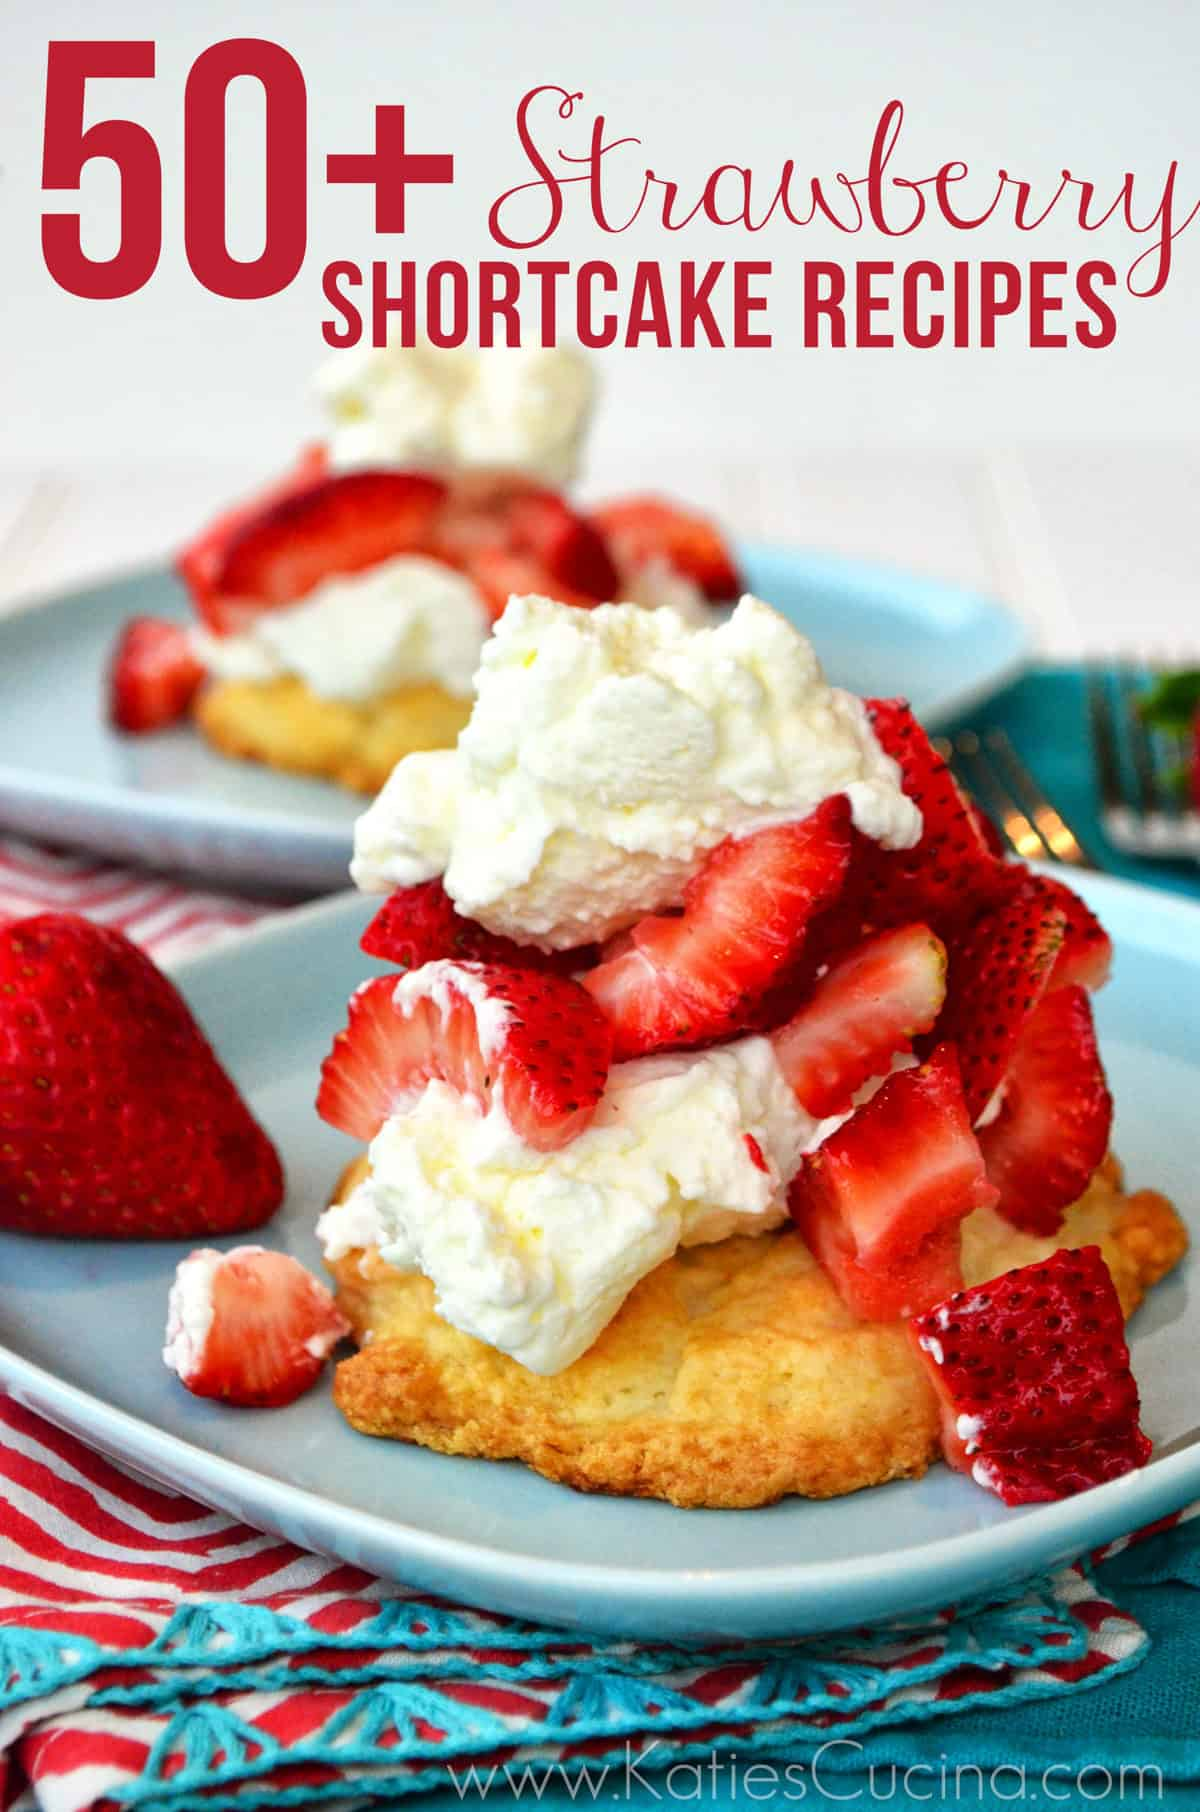 50+ Strawberry Shortcake Recipes from KatiesCucina.com #strawberry #dessert #recipes #roundup